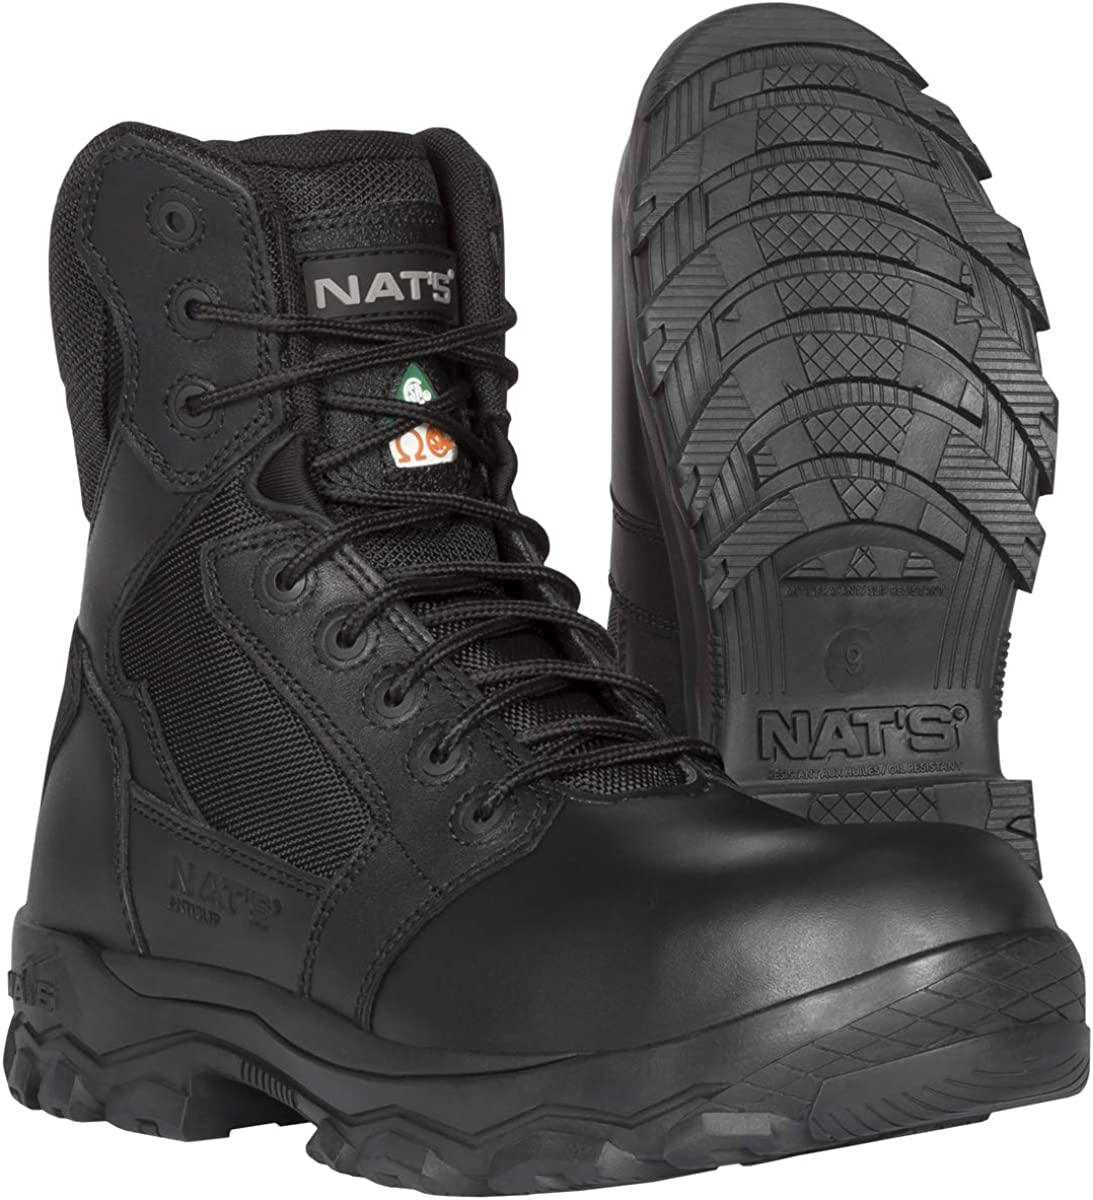 NAT'S S885 - Tactical Boots for Men with Zipper - Slip Resistant Work Boots for Men with Steel Toe - Safety Boots Light Wiehgt (1.8 lbs) - CSA and Dielectric Approved for Heavy Duty Work